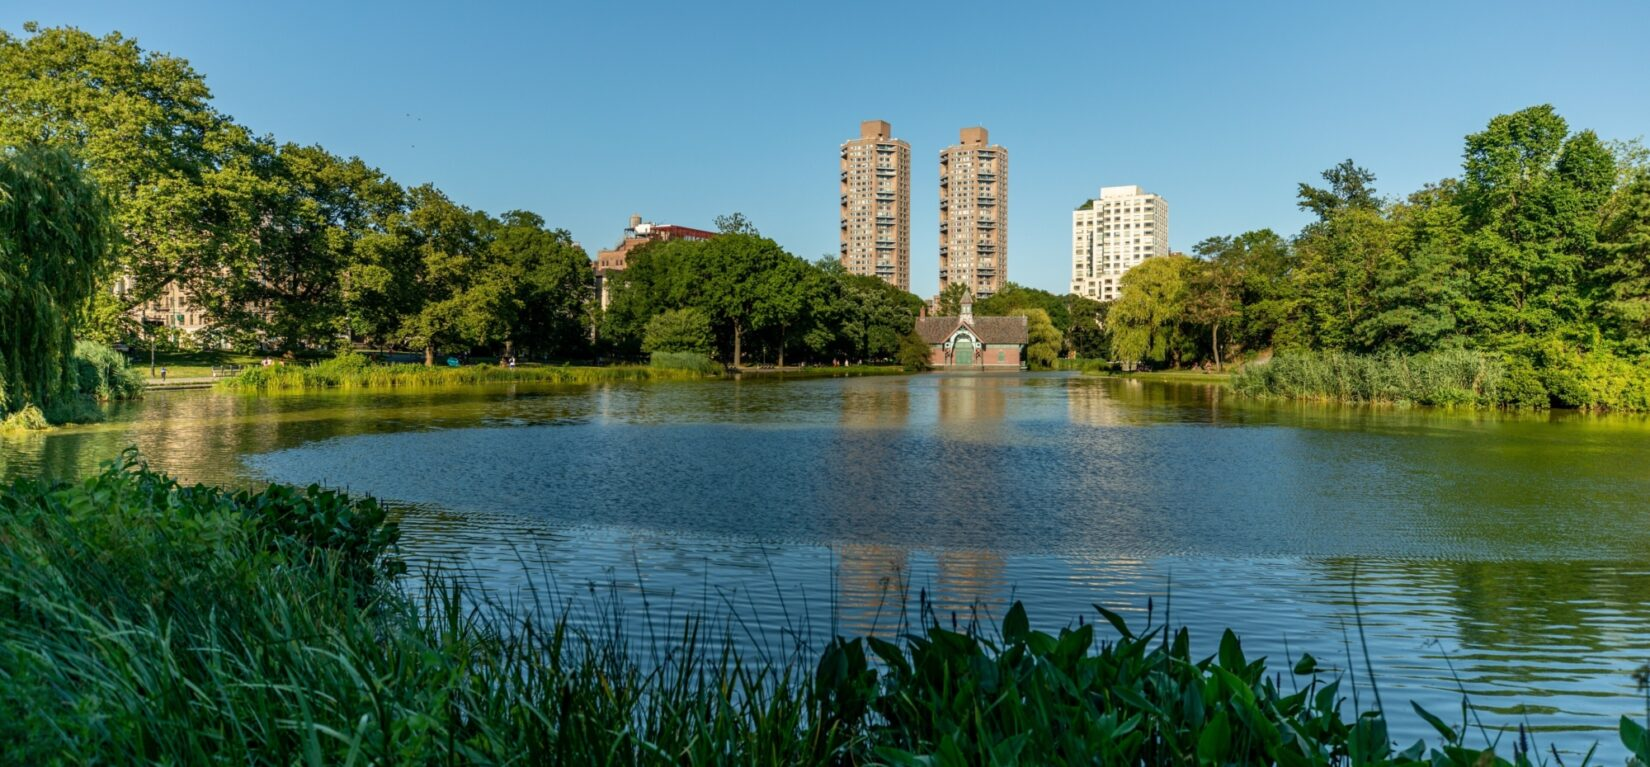 Looking across the Harlem Meer to the Dana Center